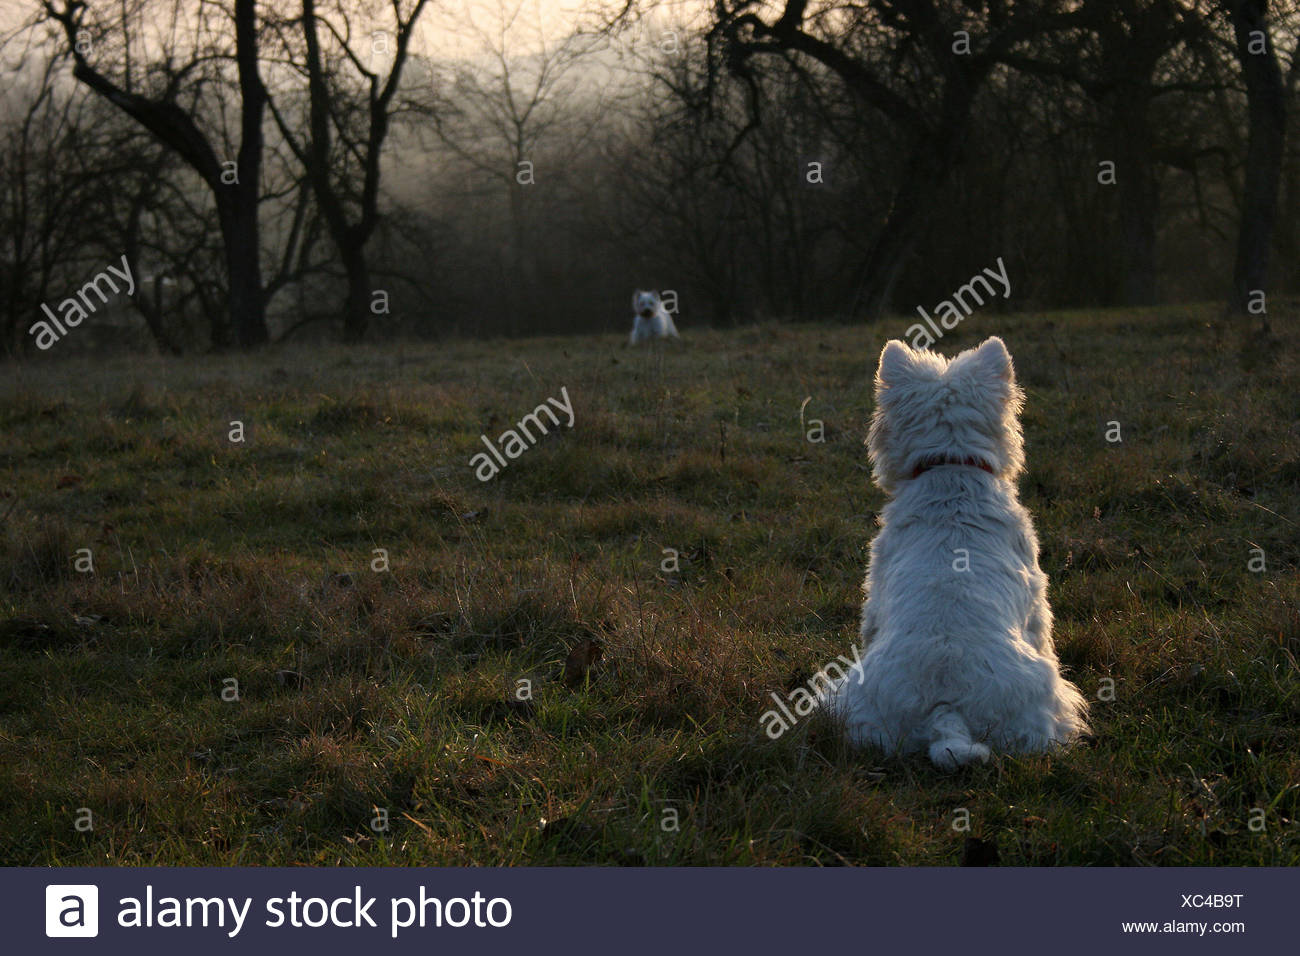 terrier,hunde,westi,west highland terrier,wiese - Stock Image